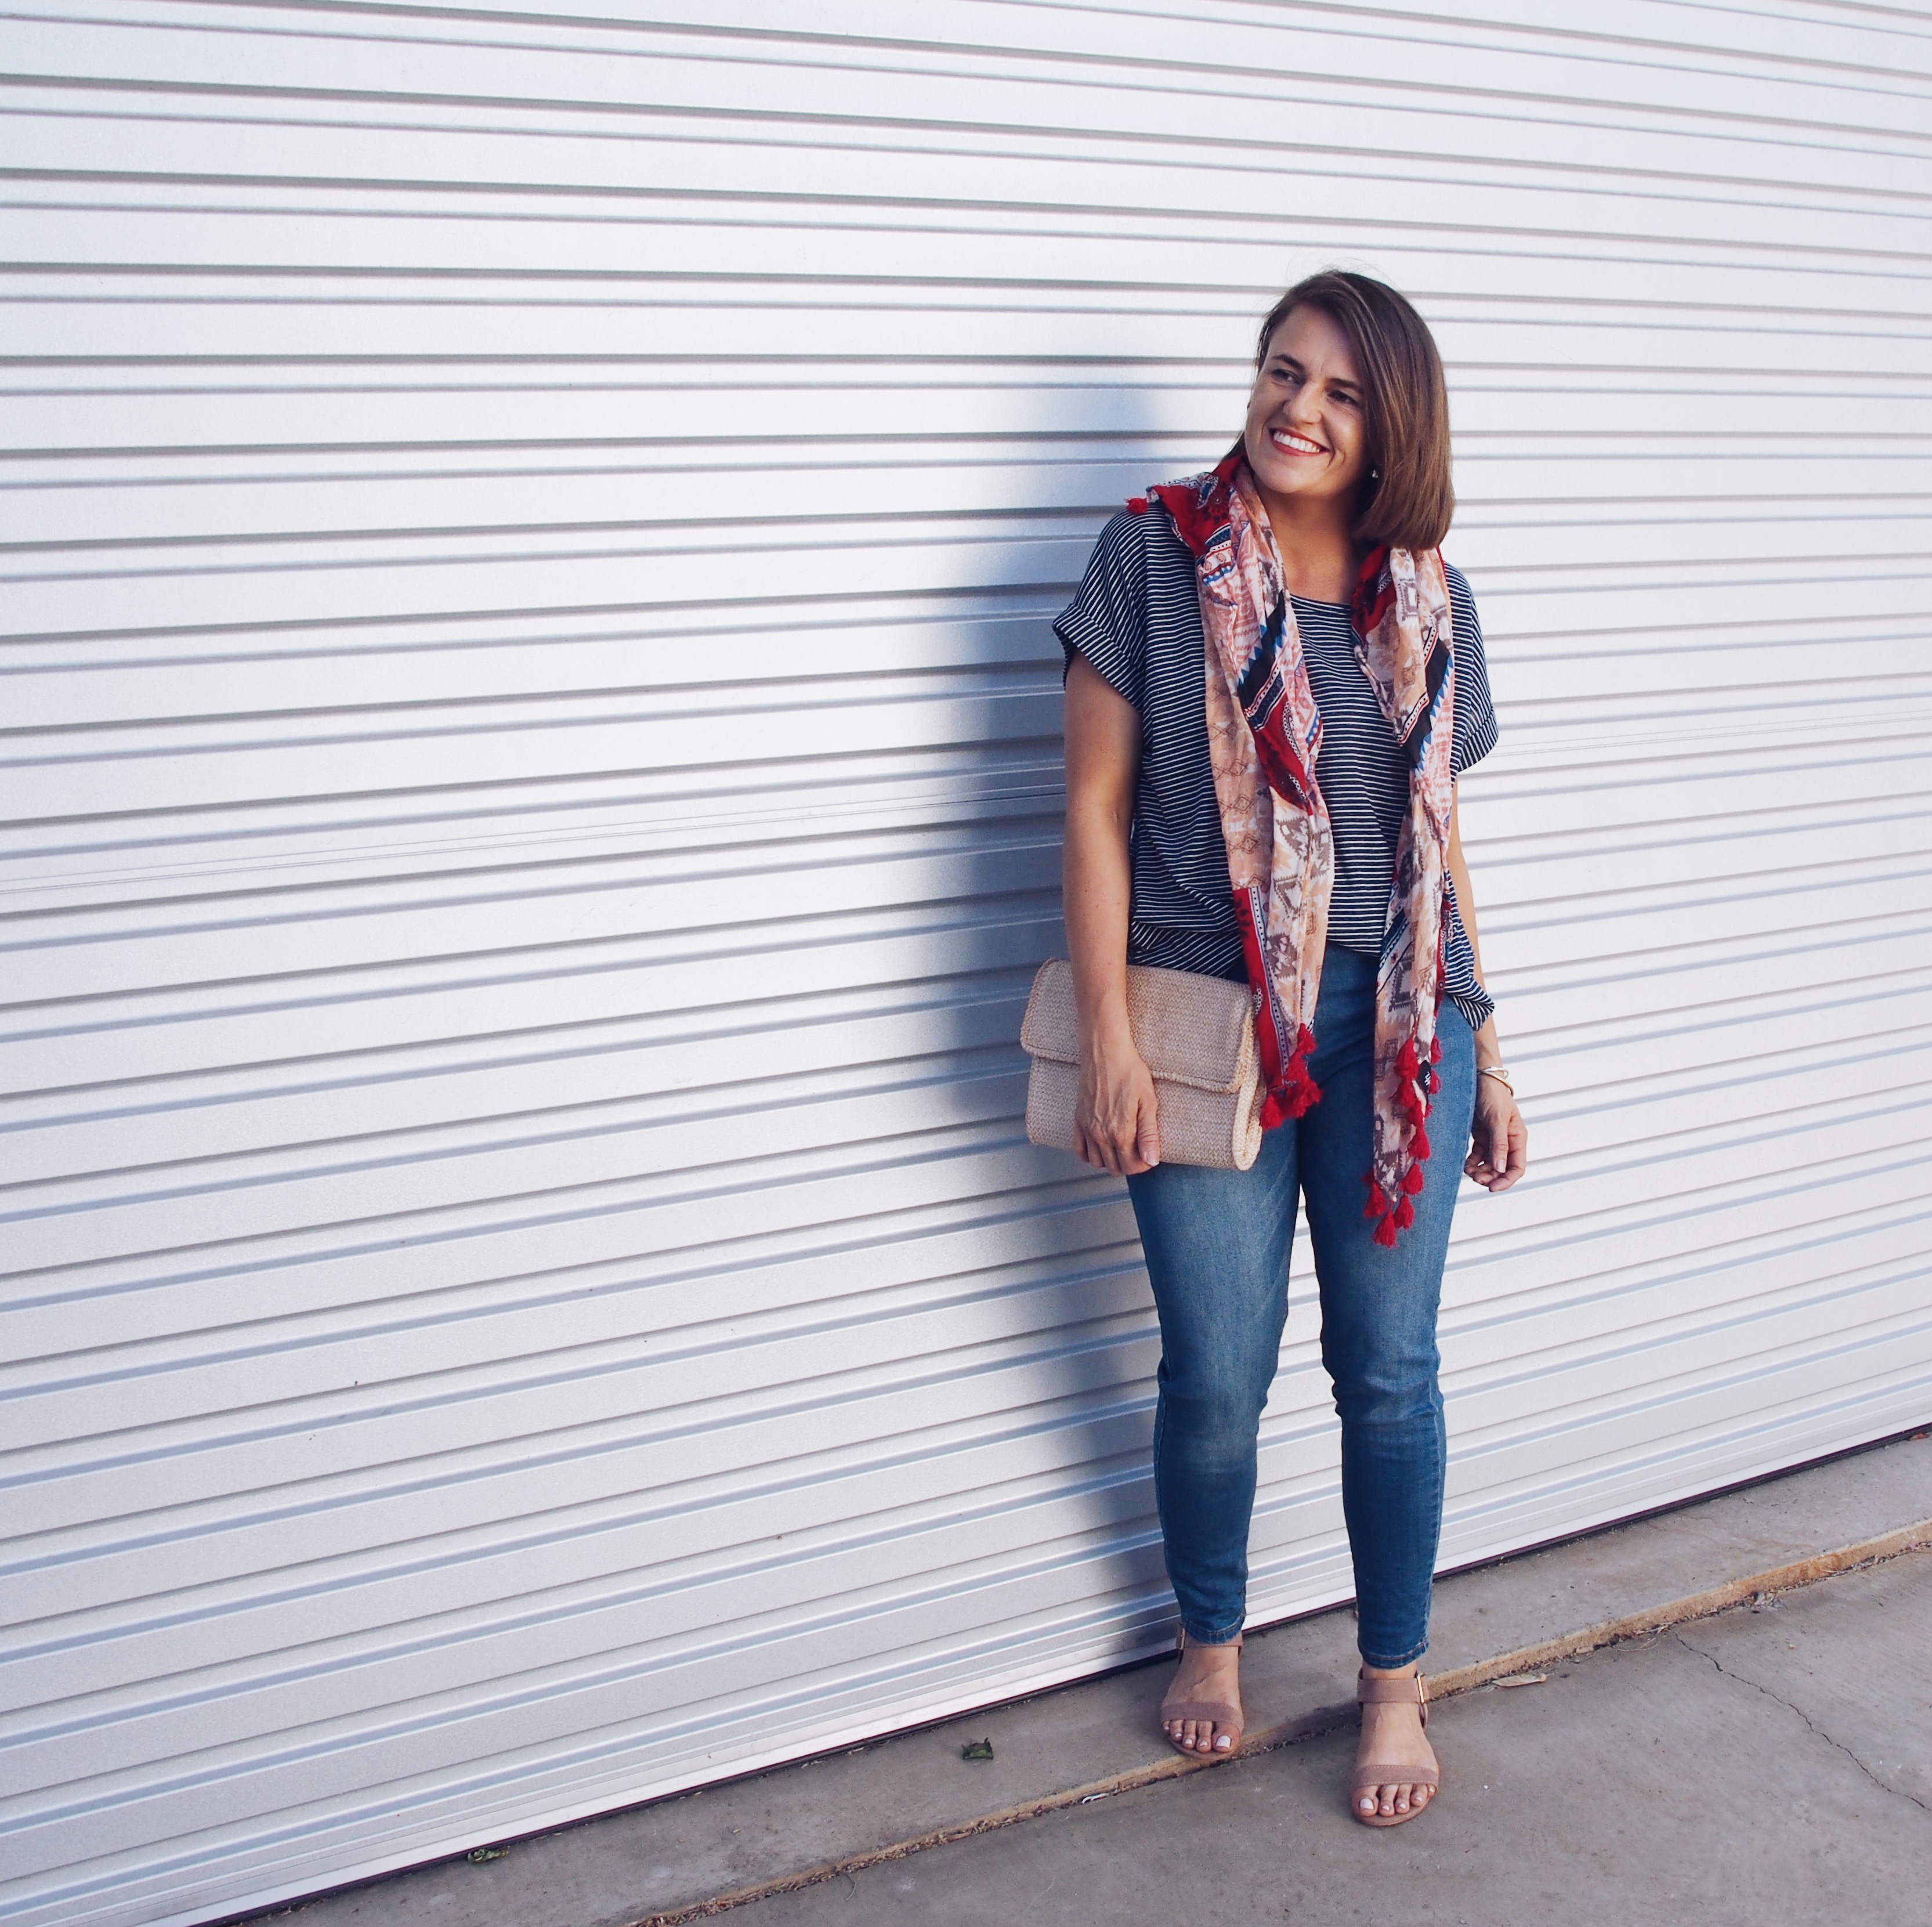 scarf and stripe top with jeans outfit idea